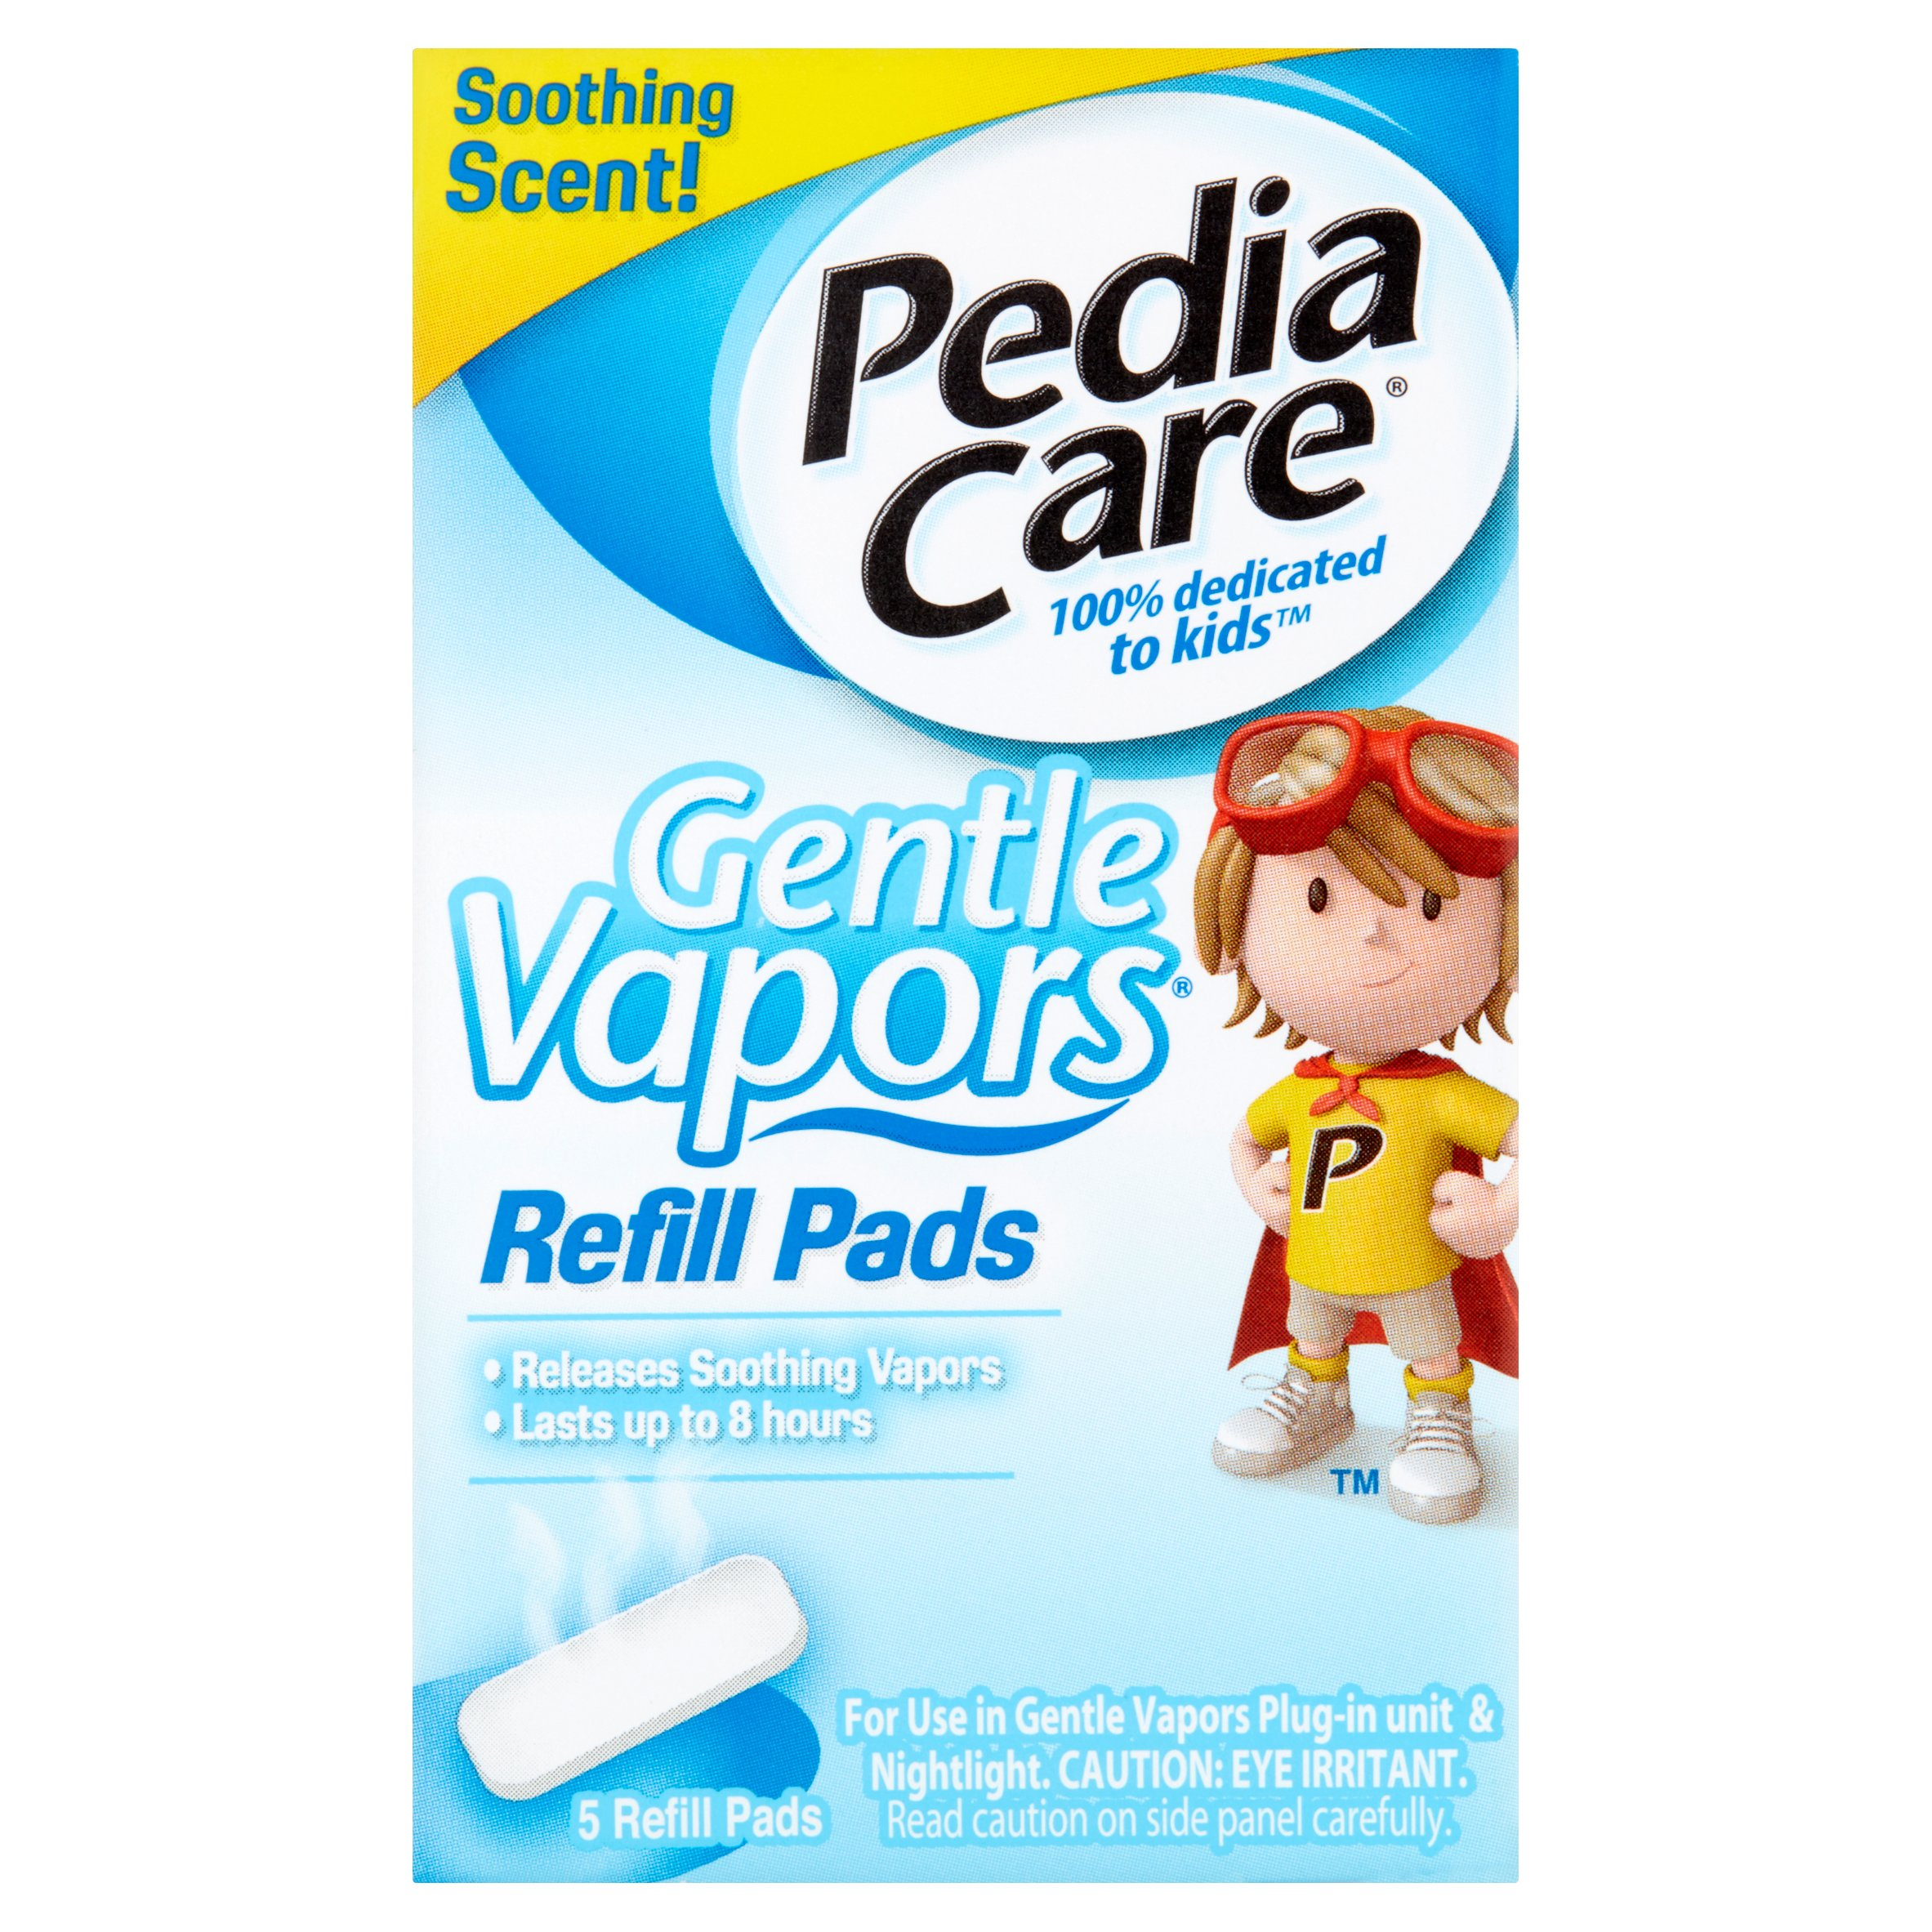 Pedia Care Gentle Vapors Refill Pads, 5 count